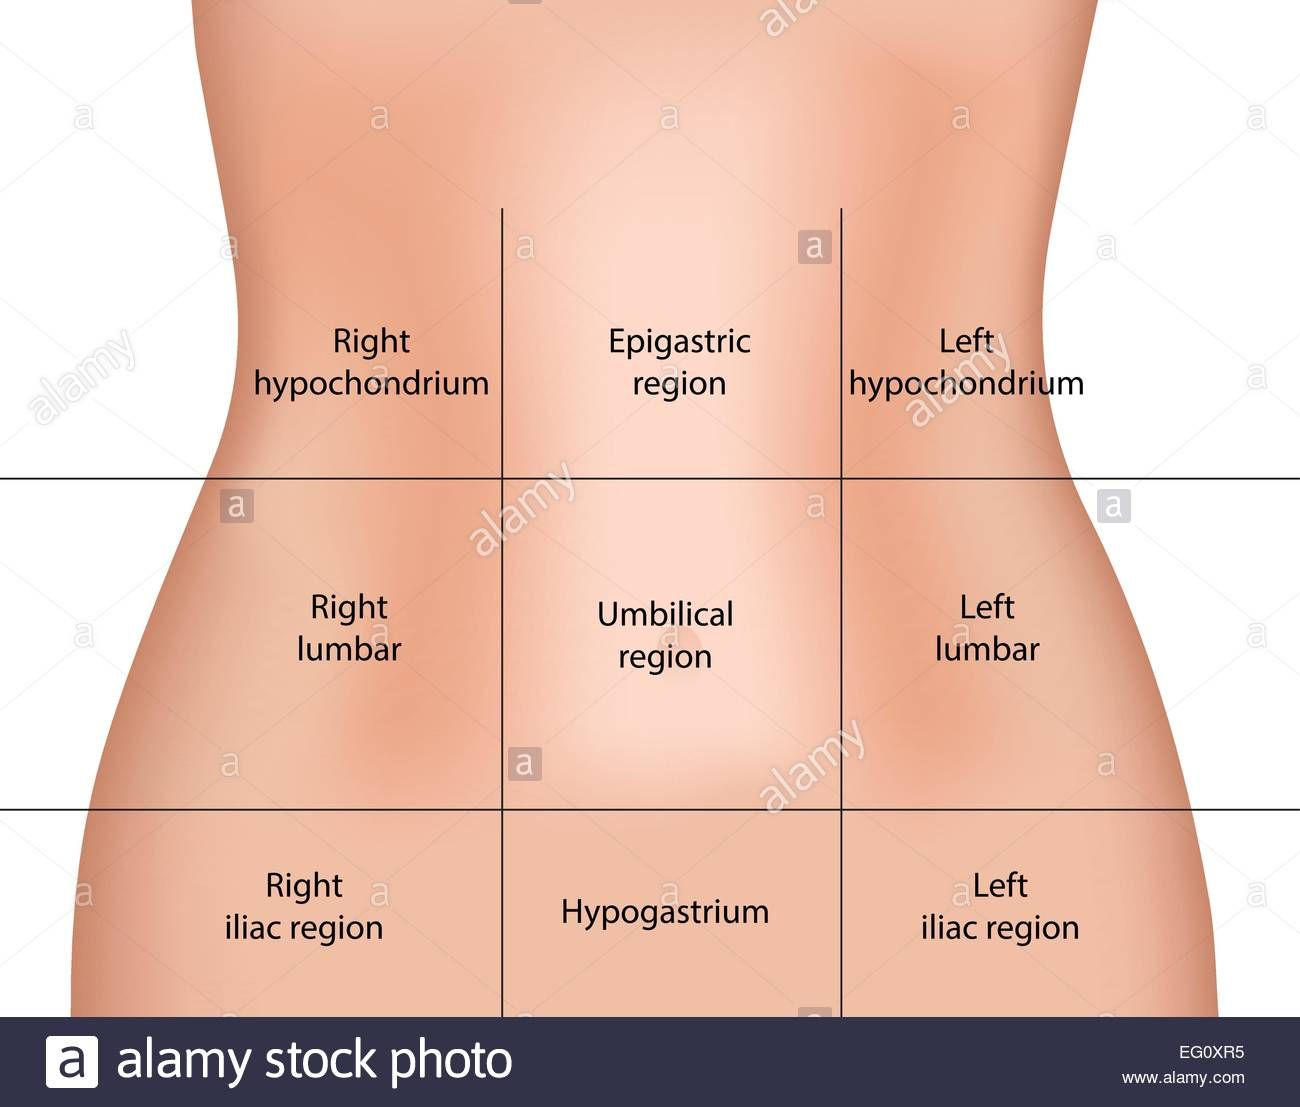 Download This Stock Vector Abdominal Regions Eg0xr5 From Alamy S Library Of Millions Of High Resolutio In 2020 Human Anatomy And Physiology Abdominal Medicine Notes